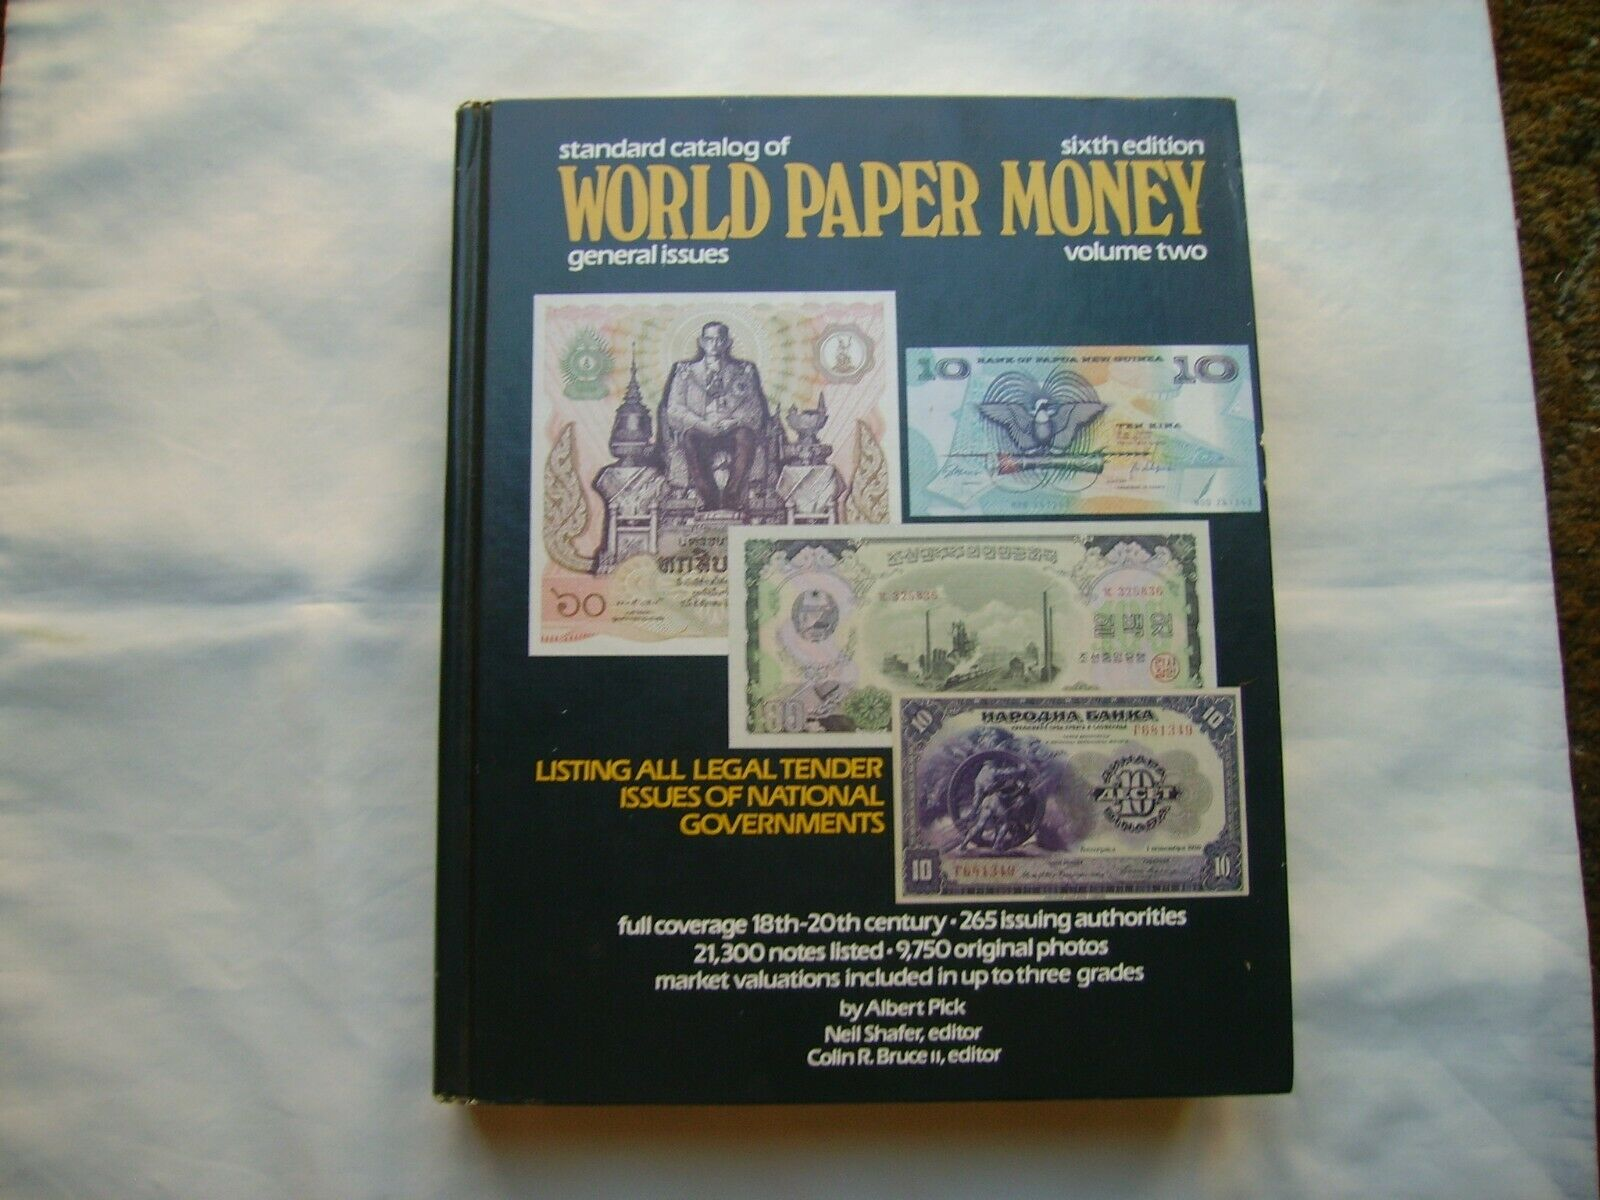 Standard Catalog Of World Paper Money 1990 Edition - $1.00